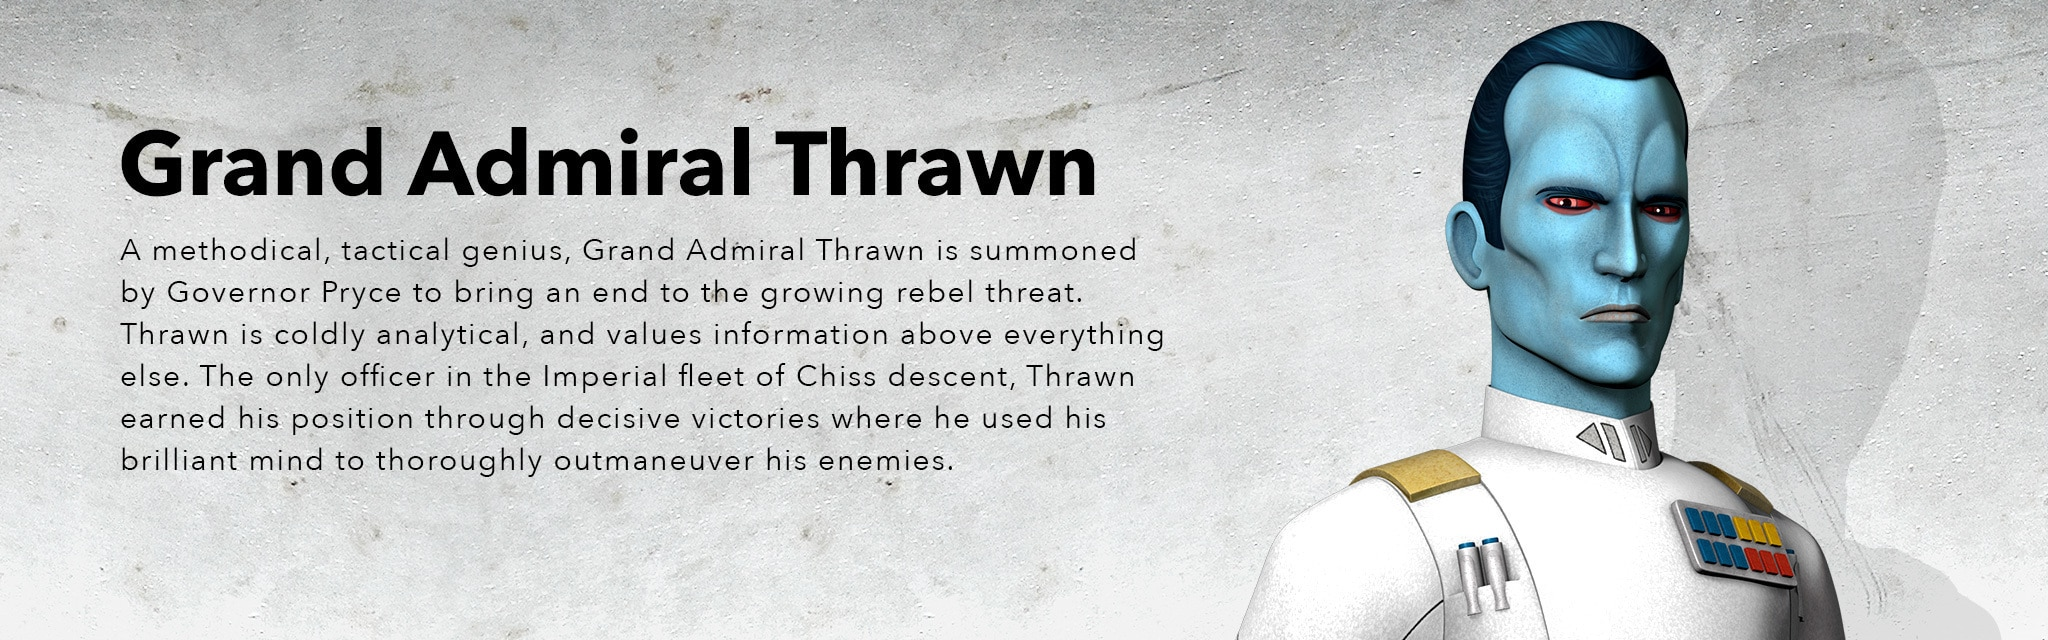 Star Wars Rebels Season 3 - Grand Admiral Thrawn - Hero